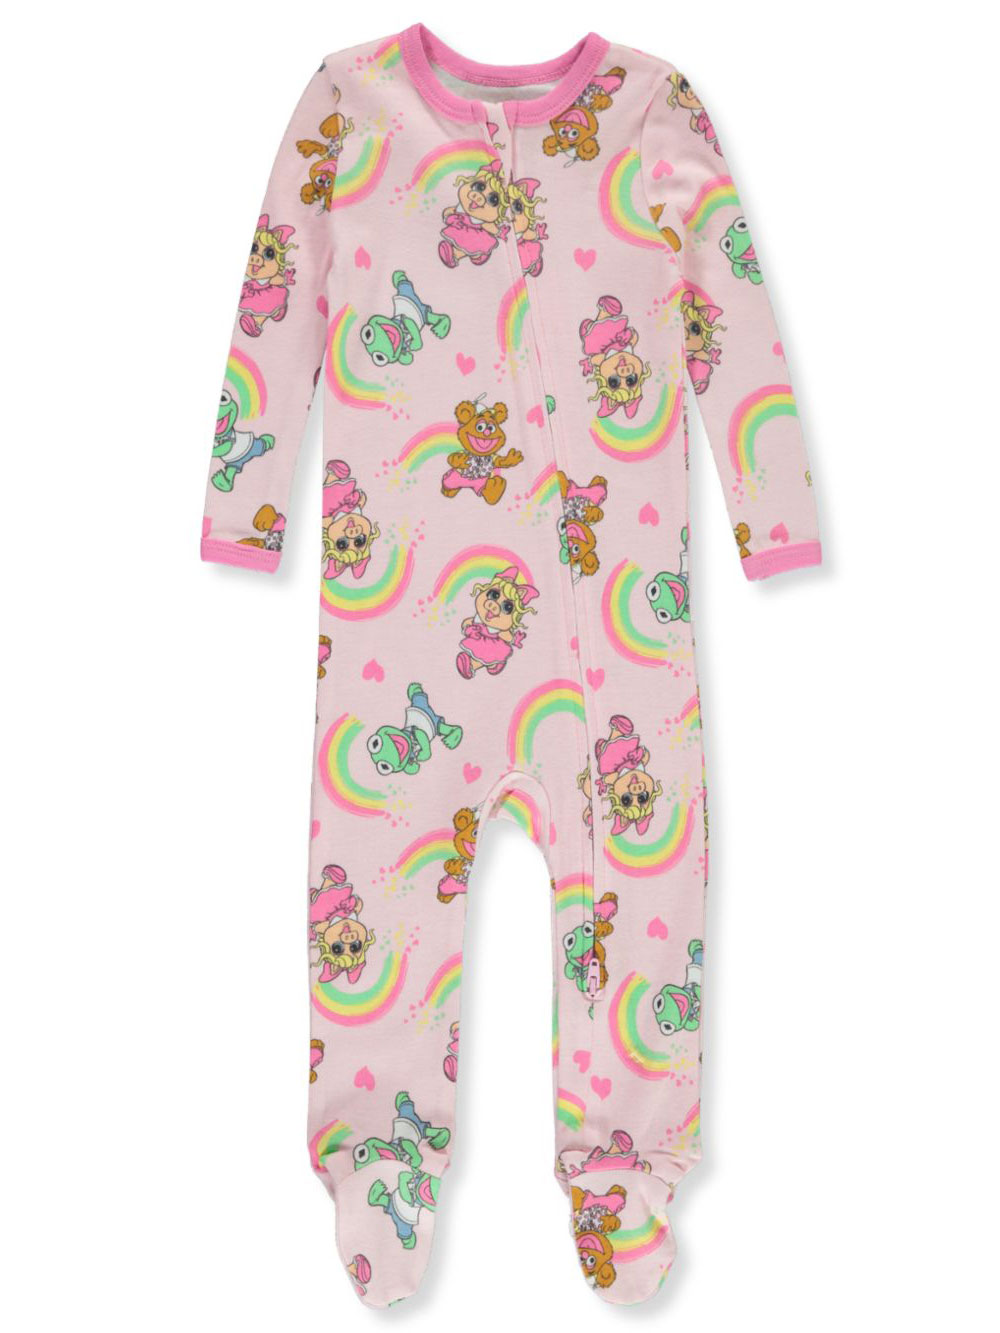 Muppet Babies Coveralls